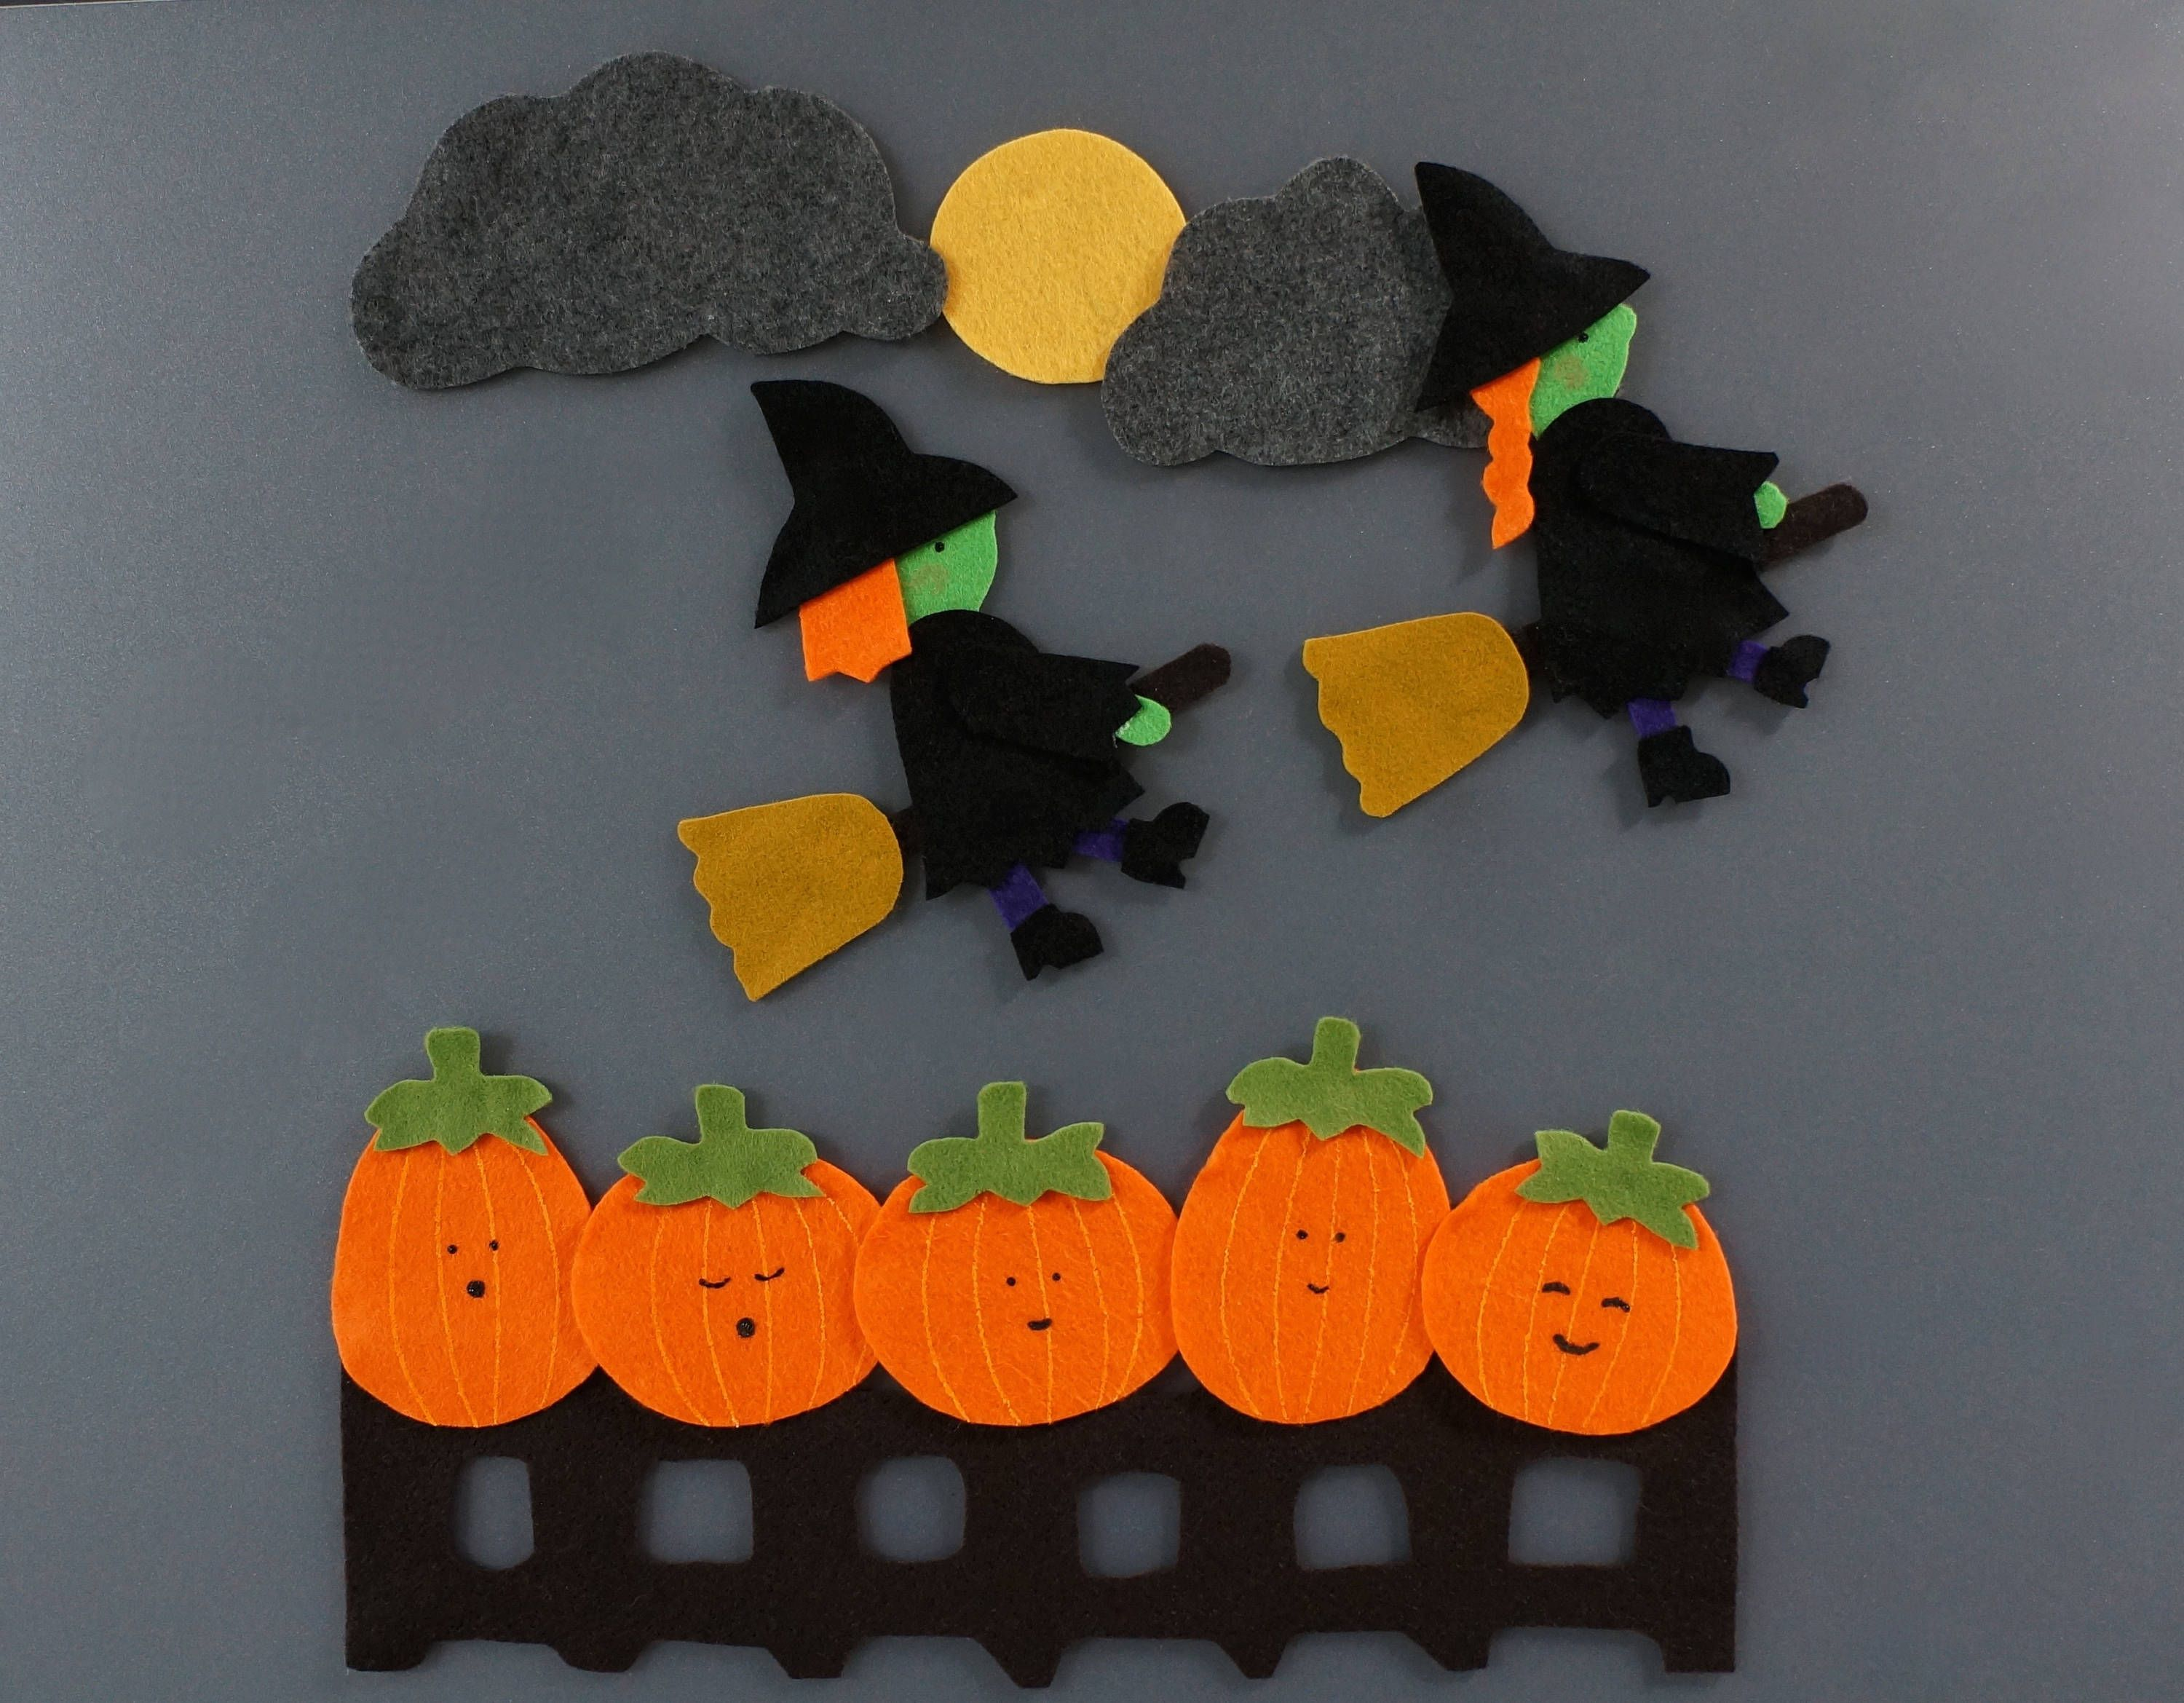 5 Little Pumpkins Felt Story Felt Stories Flannel Board Story Circle Time Preschool